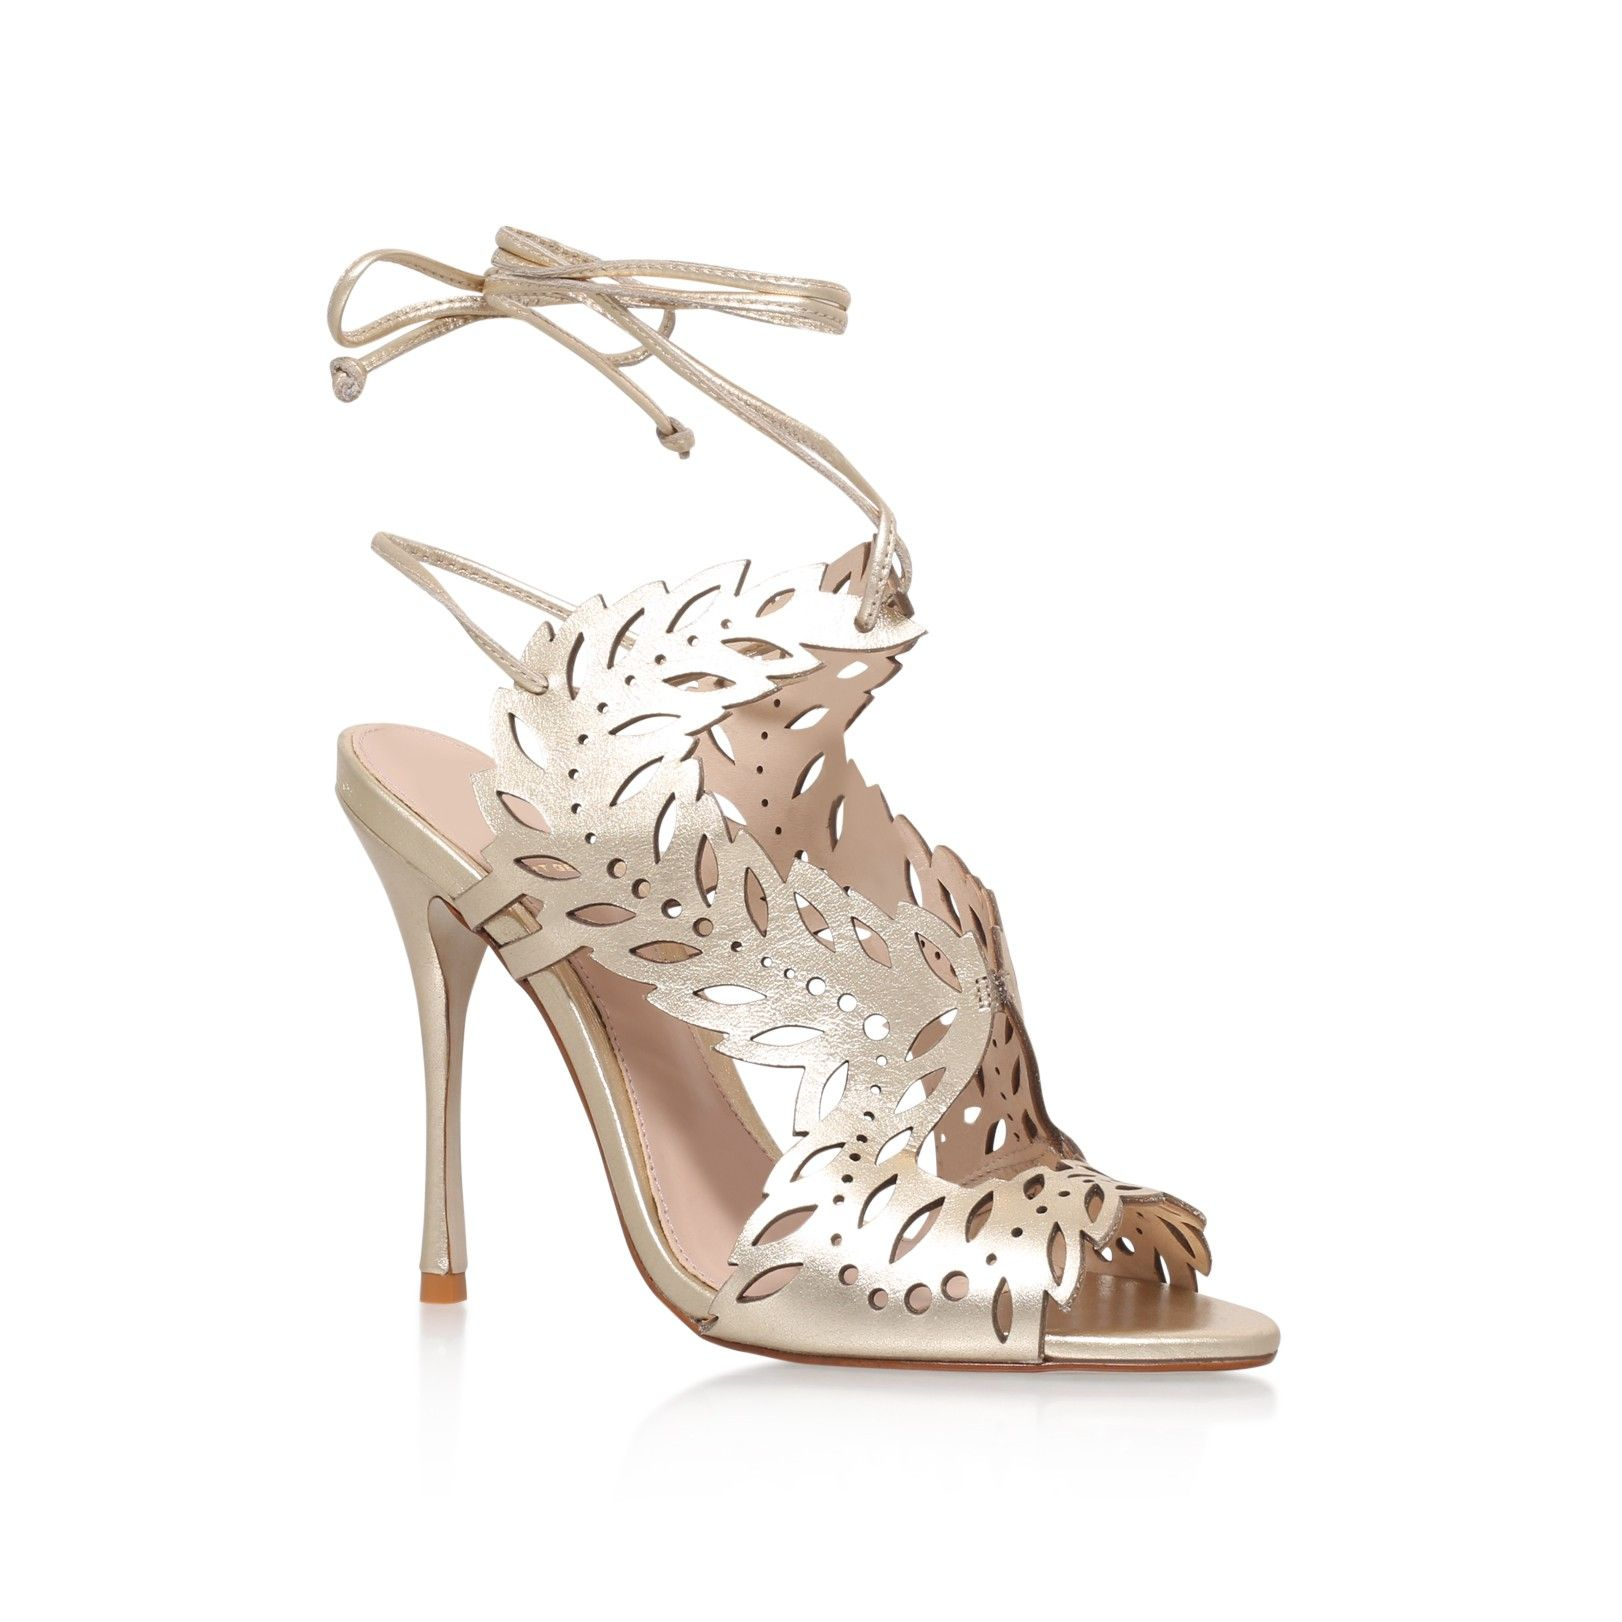 horatio gold high heel sandals from KG Kurt Geiger